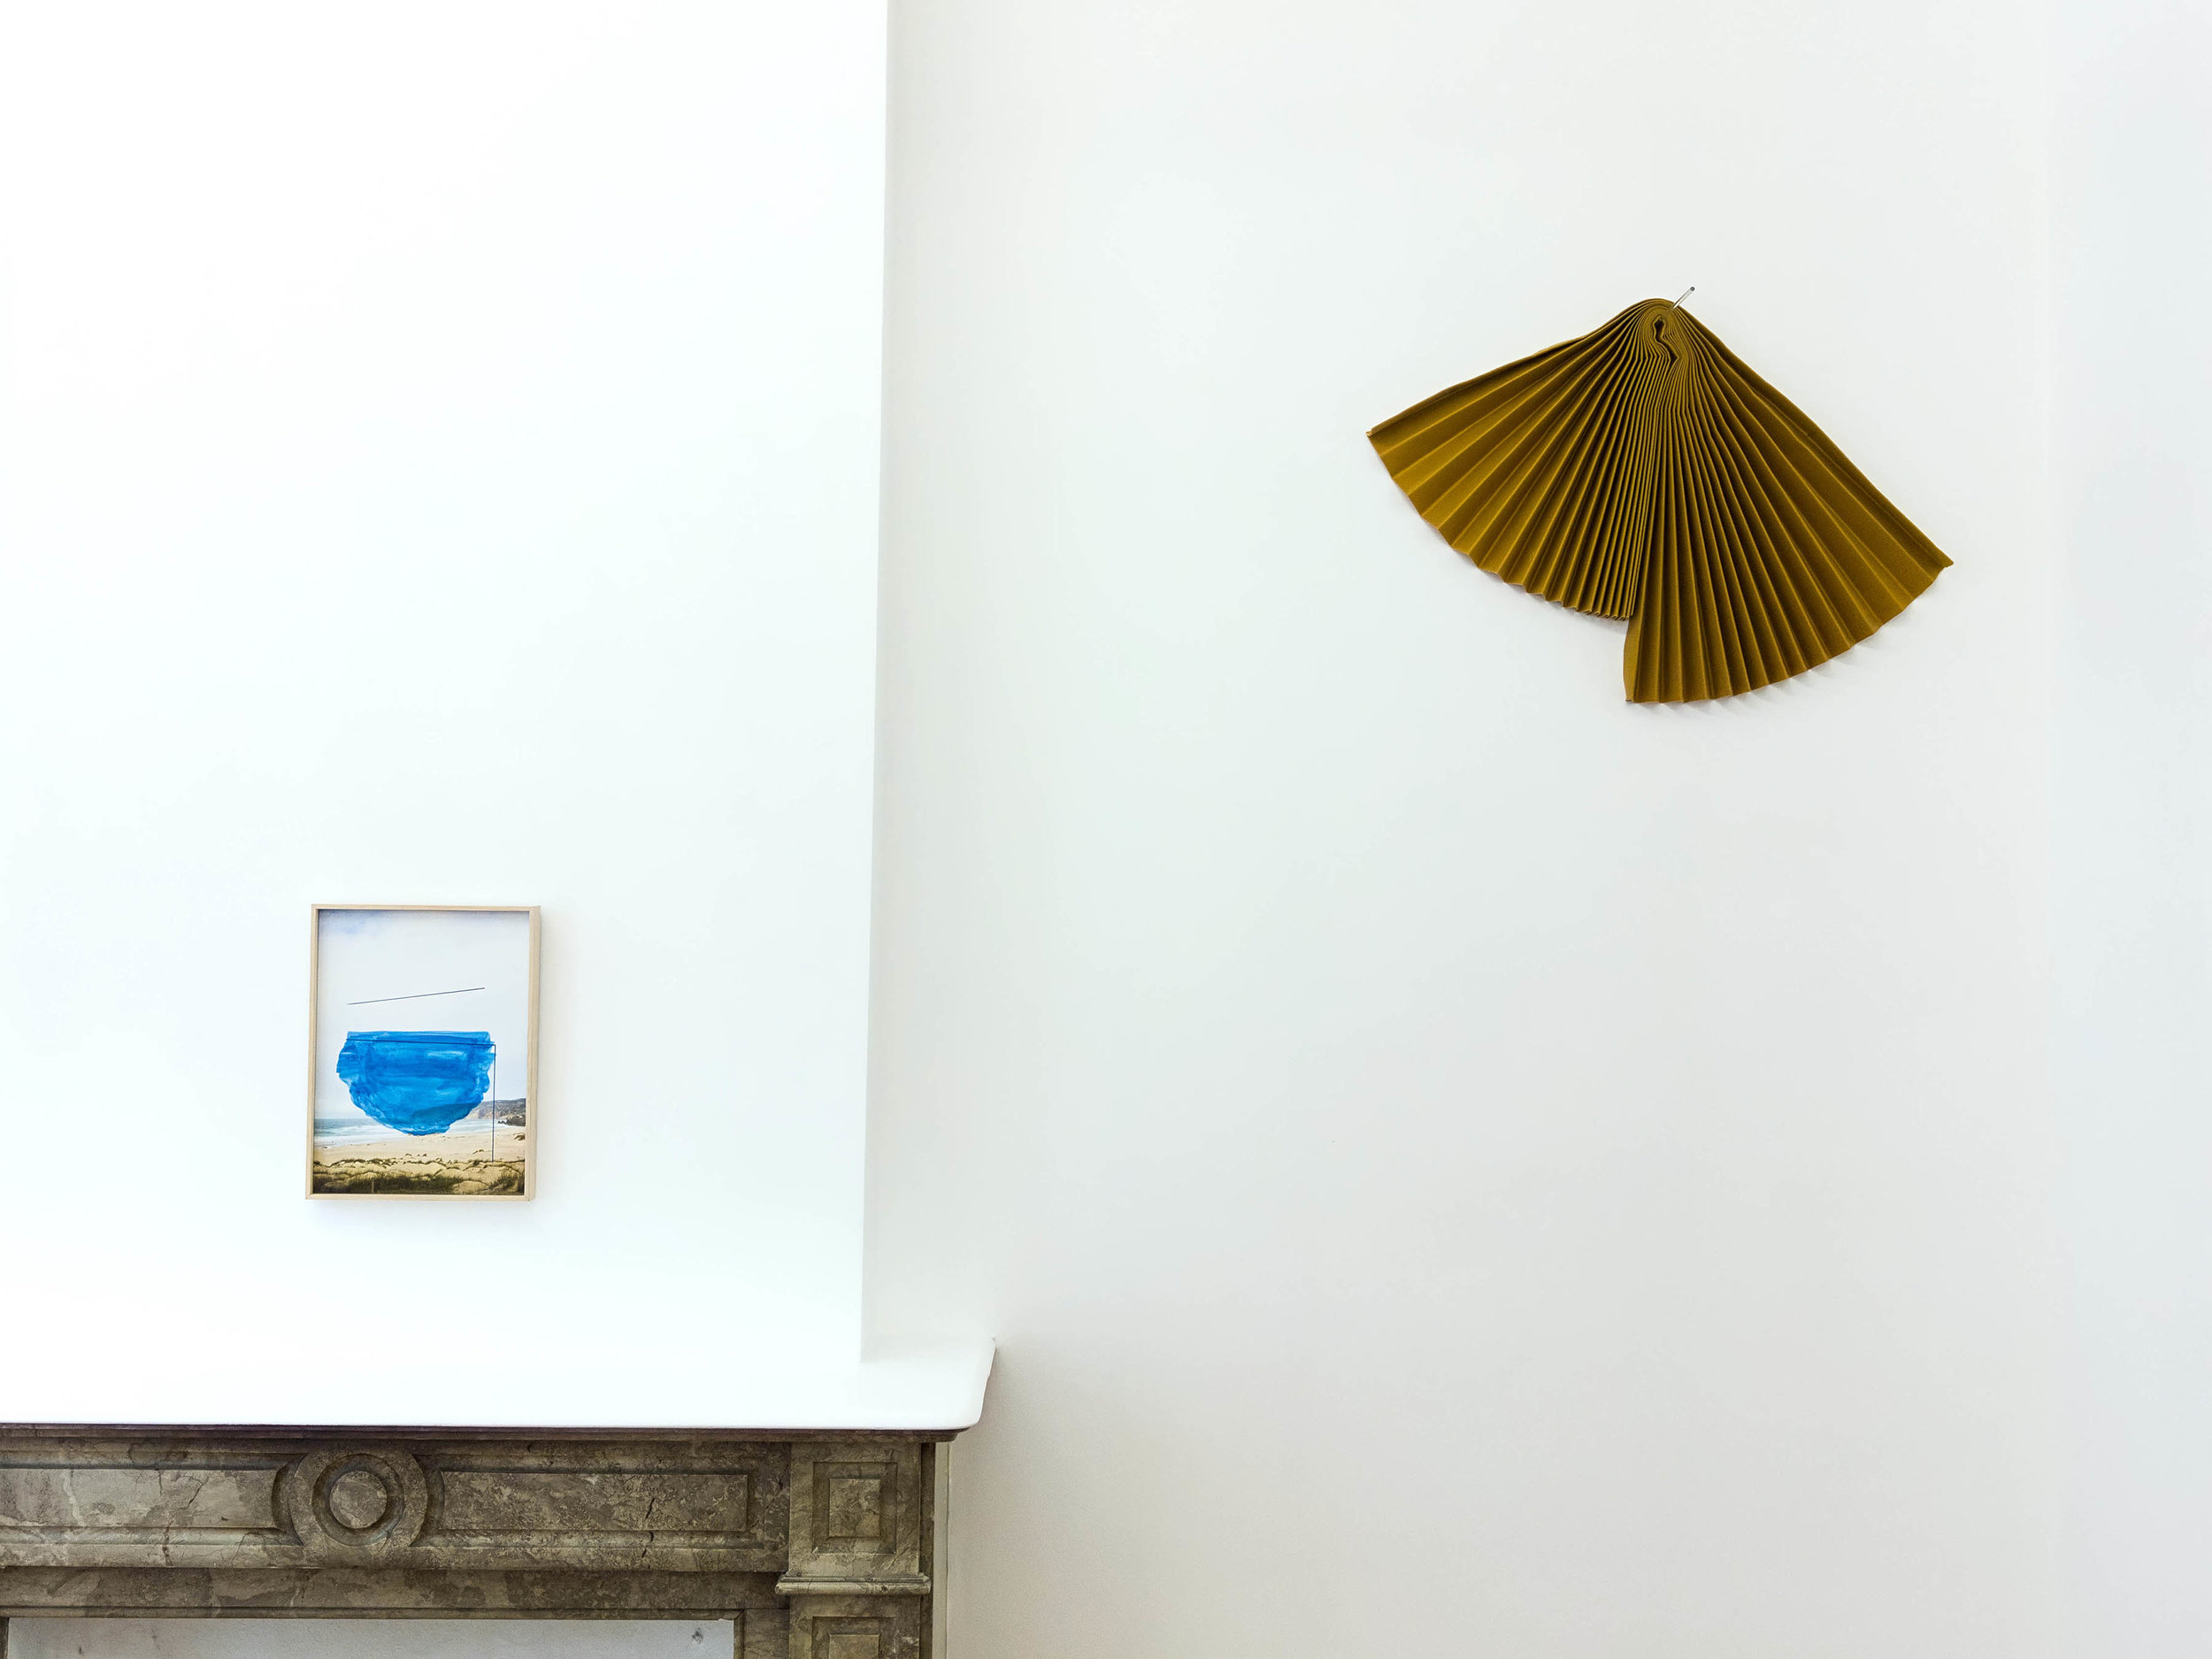 Alice Quaresma, Sea Colony, gouache and acrylic paint over photographic print (2018) and Mano Penalva, Acorde, textile and glass cane (2019)